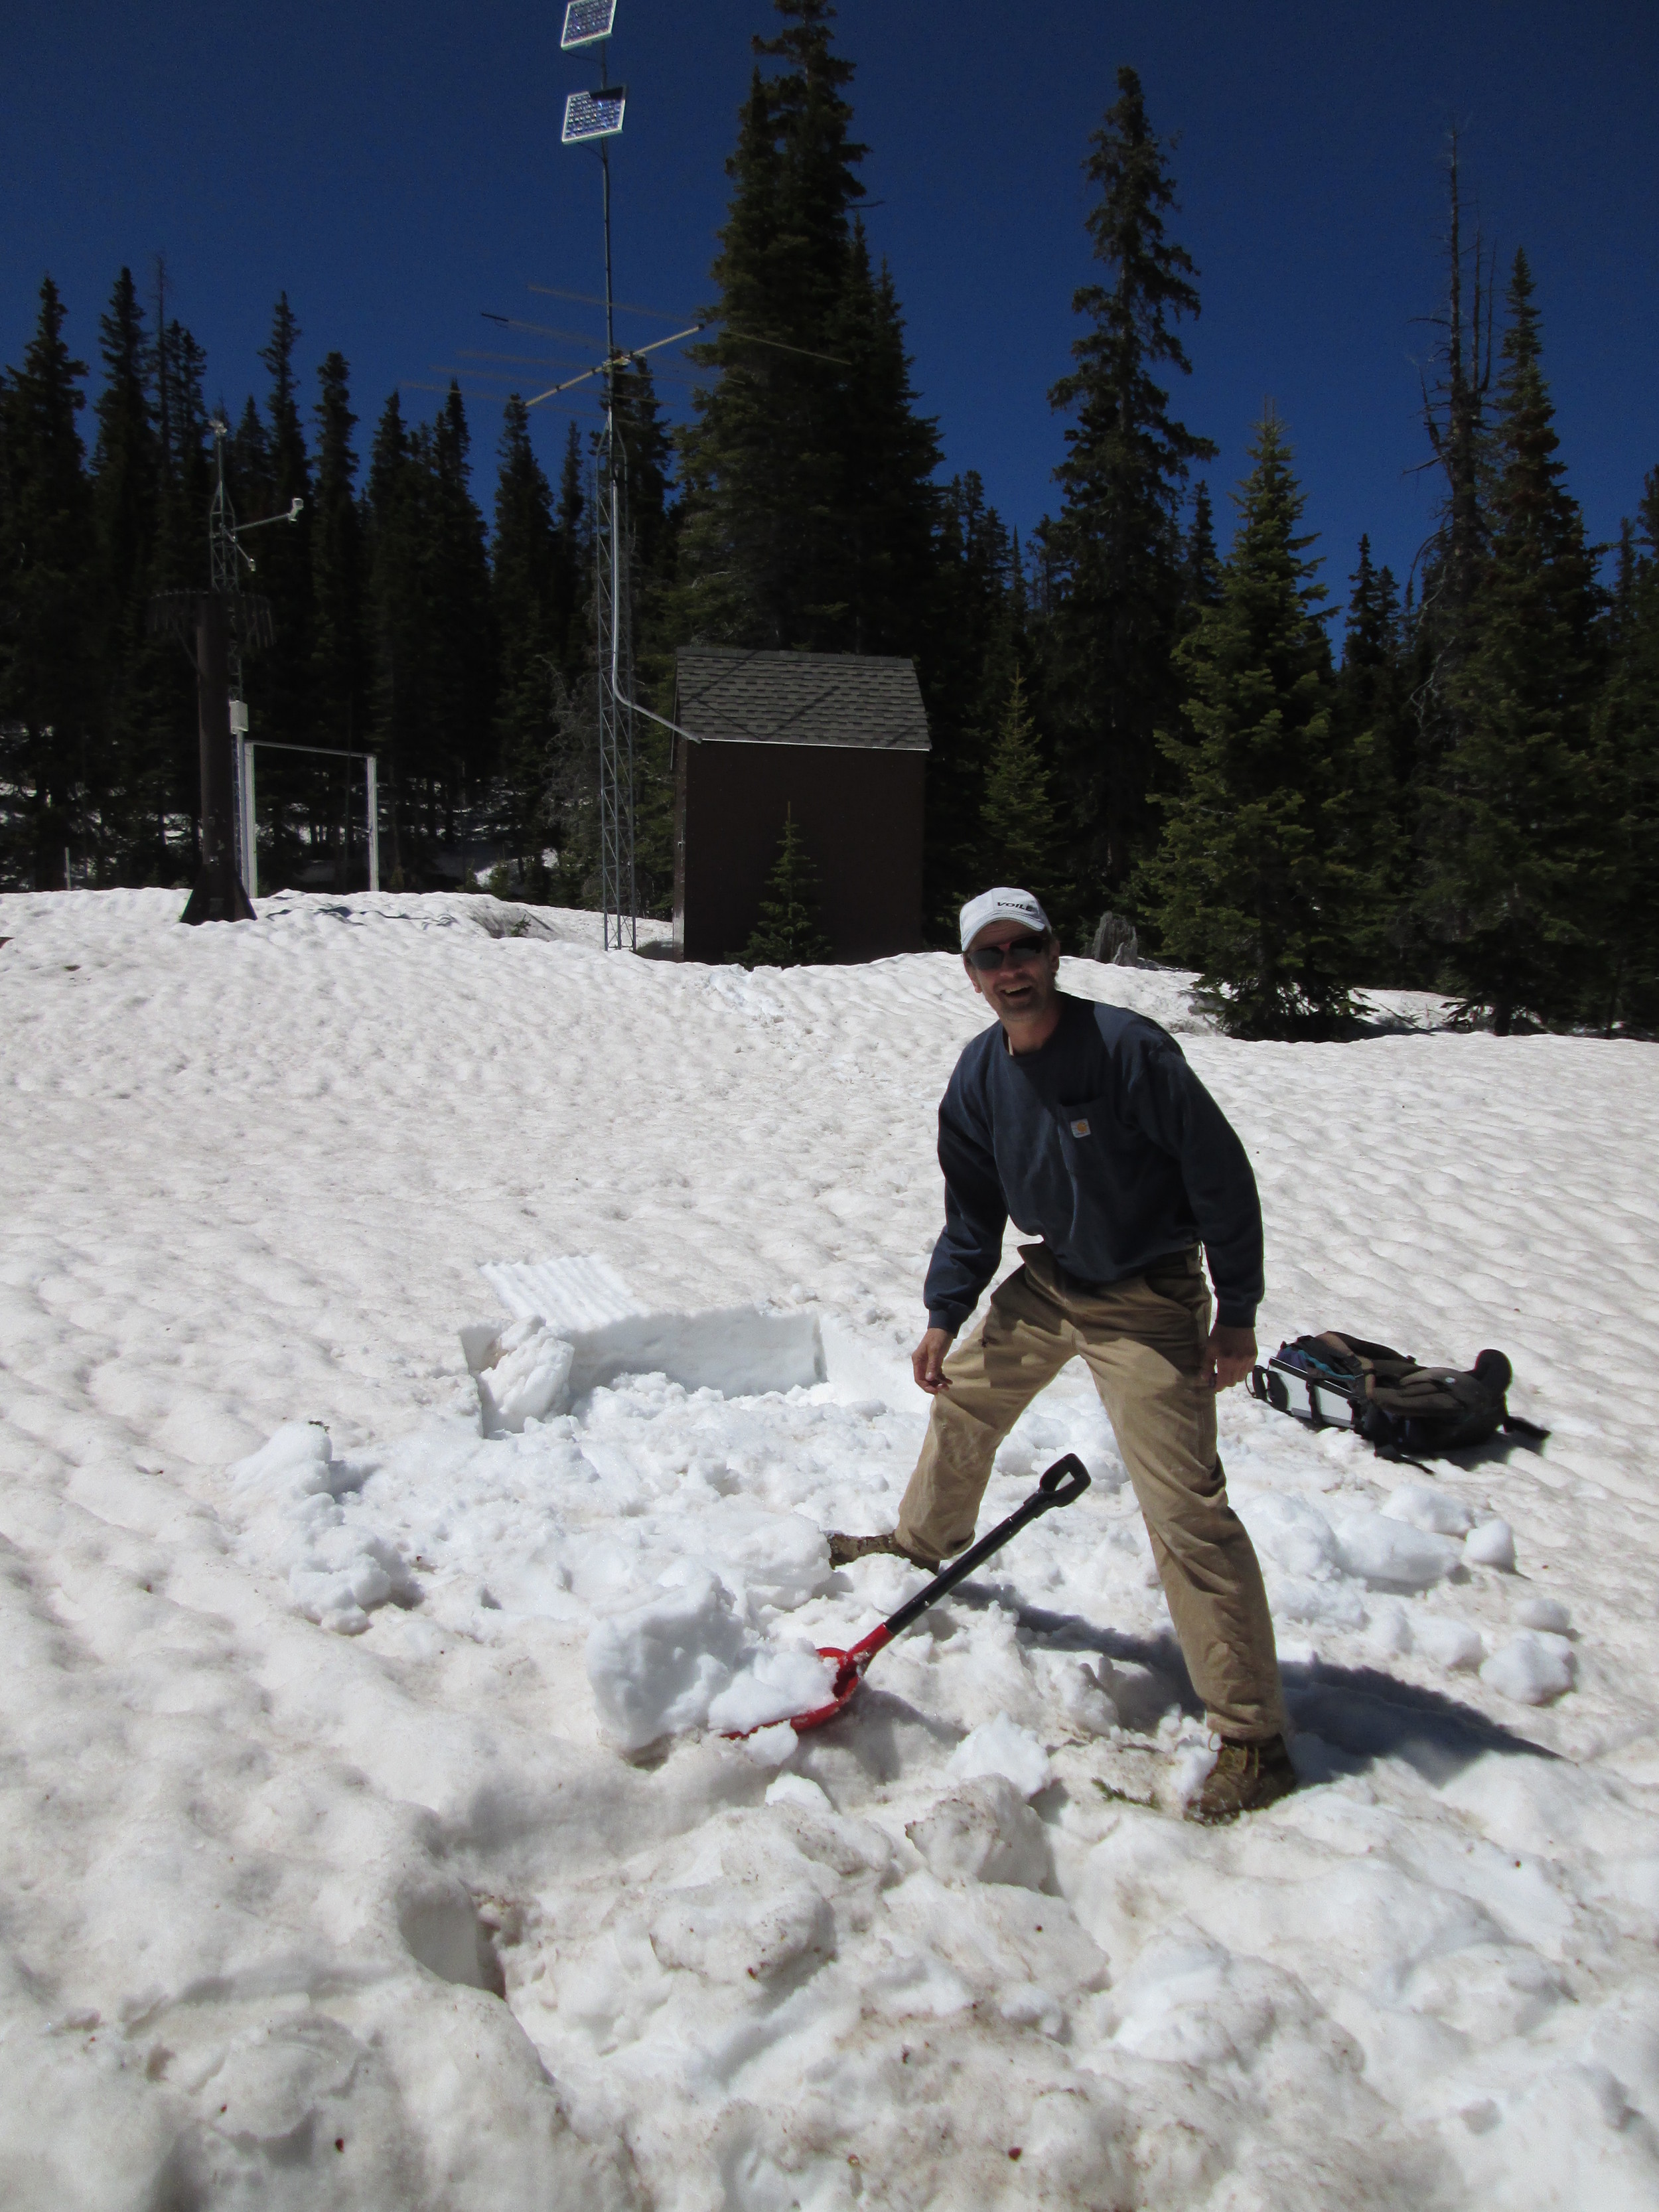 Adam Cwiklin, water and wastewater superintendent for the Town of Fraser and a participant in the Colorado Foundation for Water Education's Water Leaders Program, assisted with the June 3 snow profile at Berthoud Summit. At the time, very high snowmelt rates had driven the Fraser River 'out of bank' and generated minor flooding in his service area.